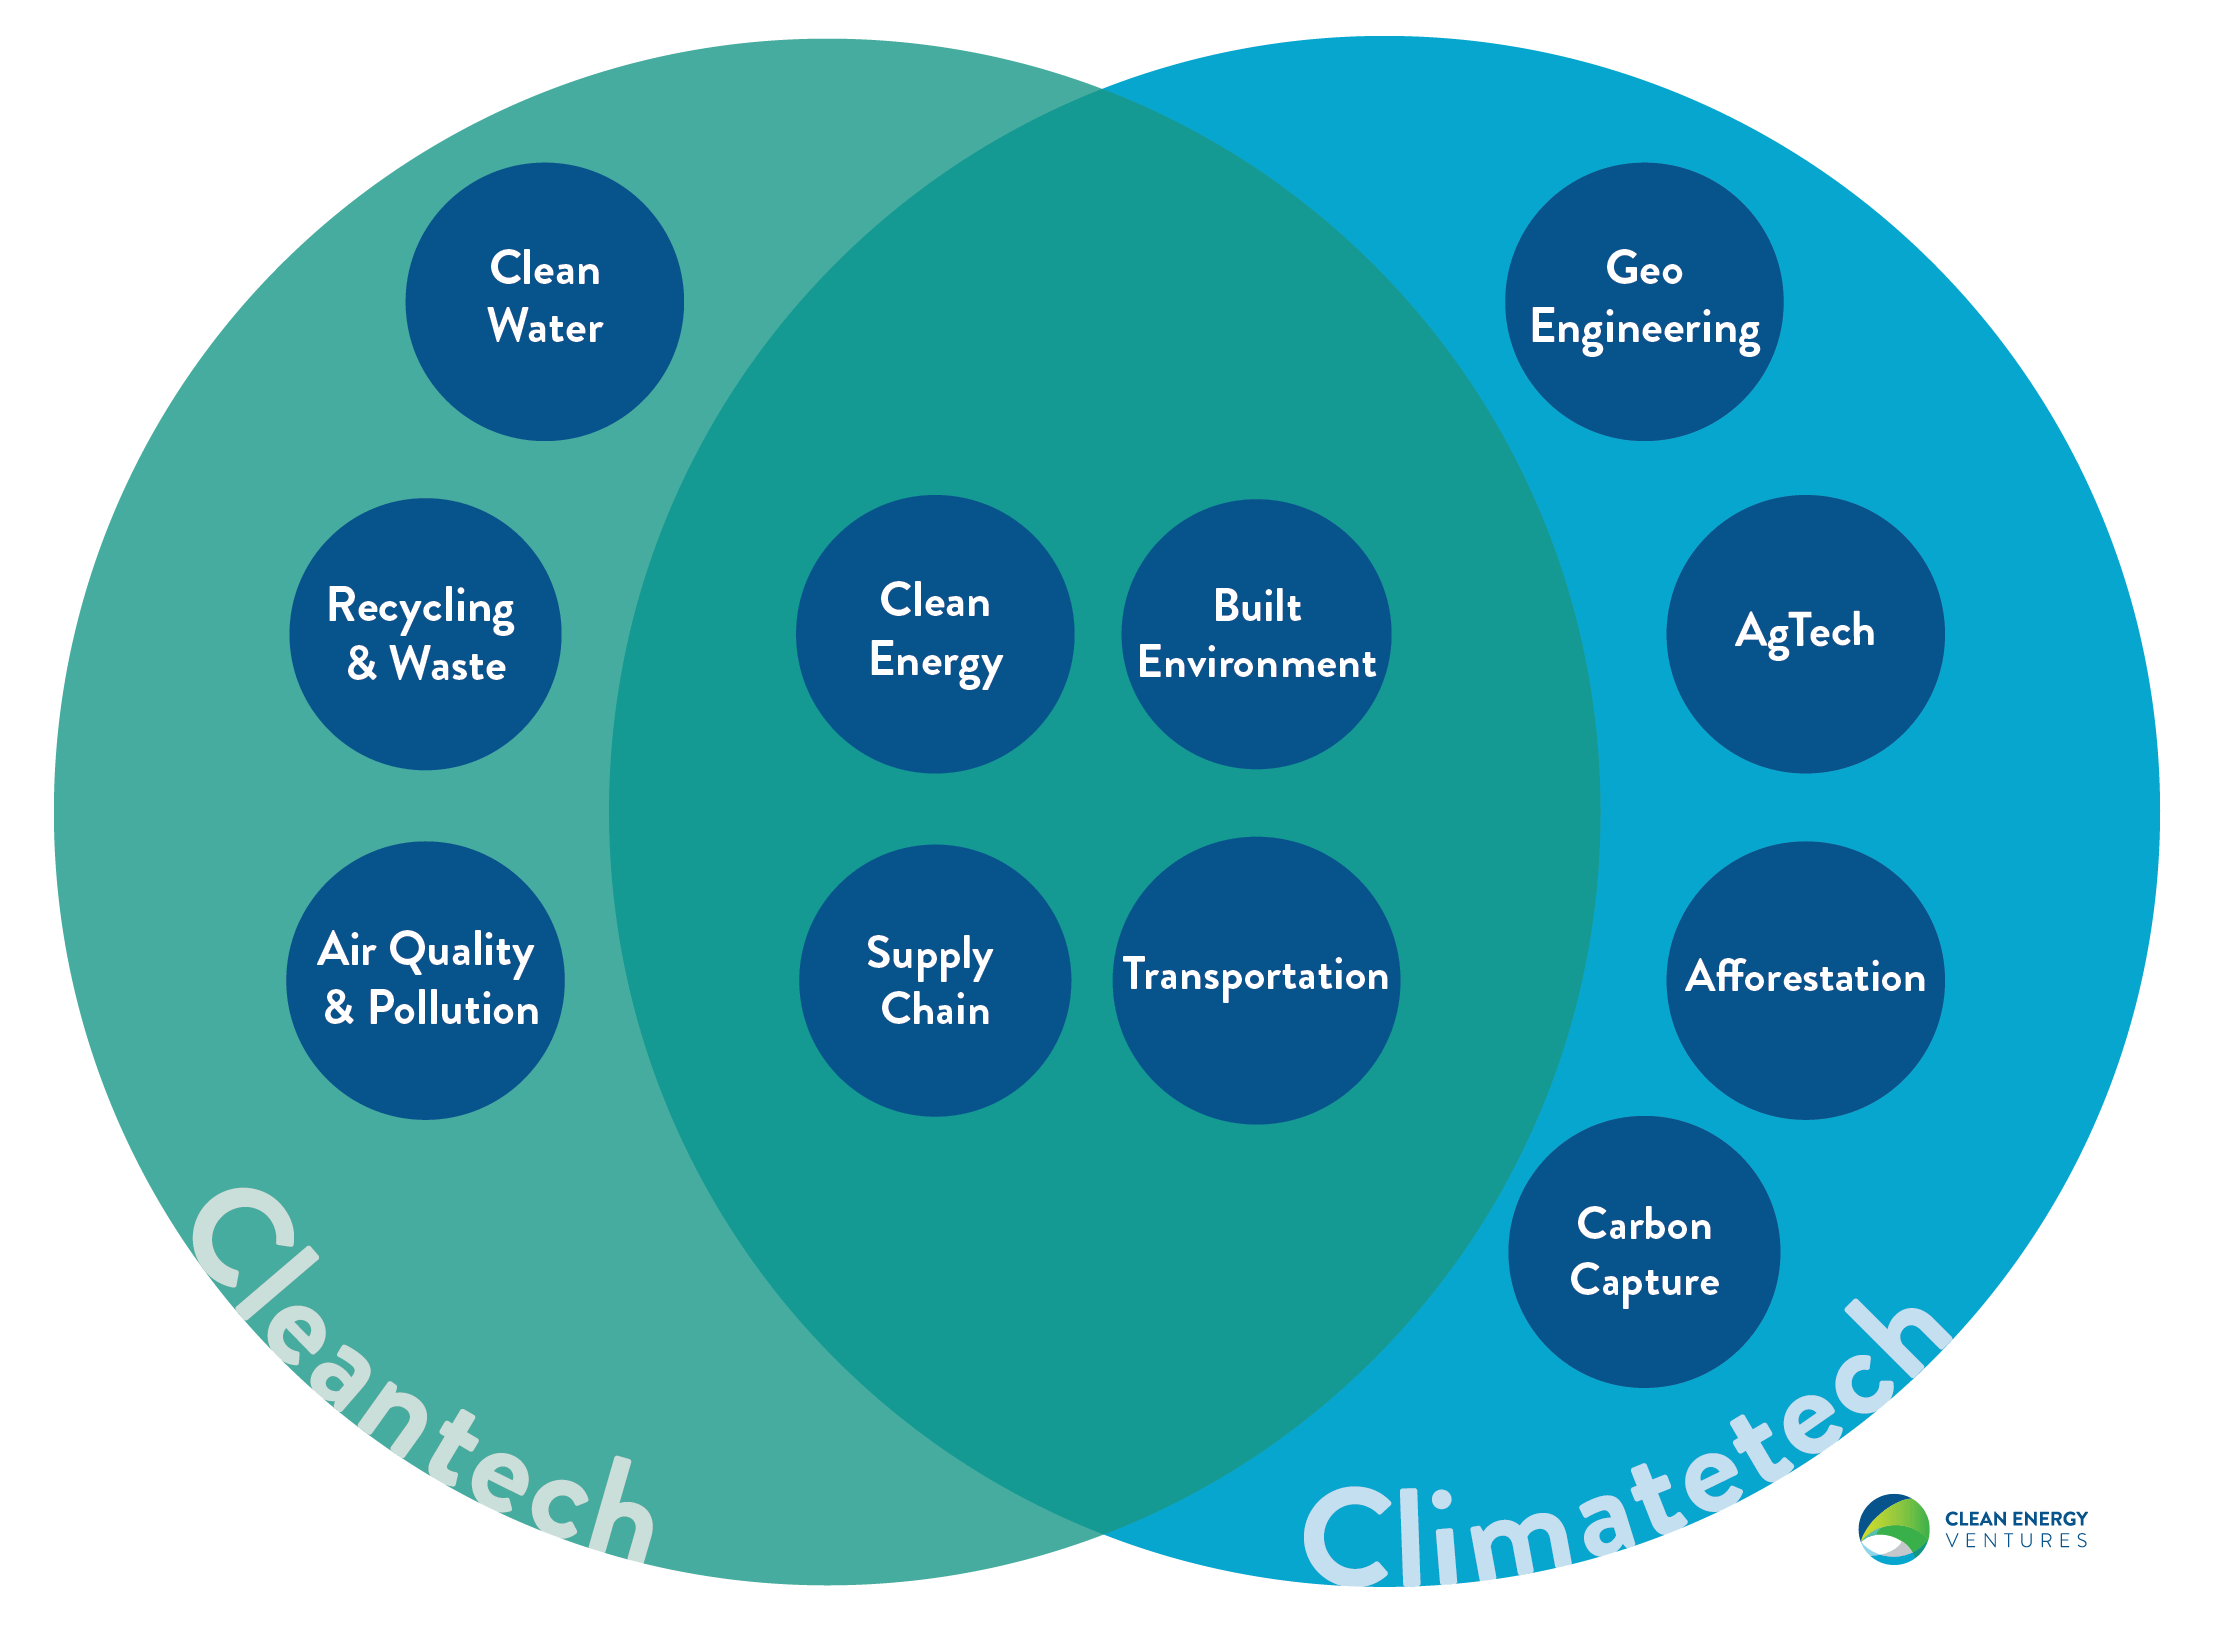 What is the difference between climatetech and cleantech?